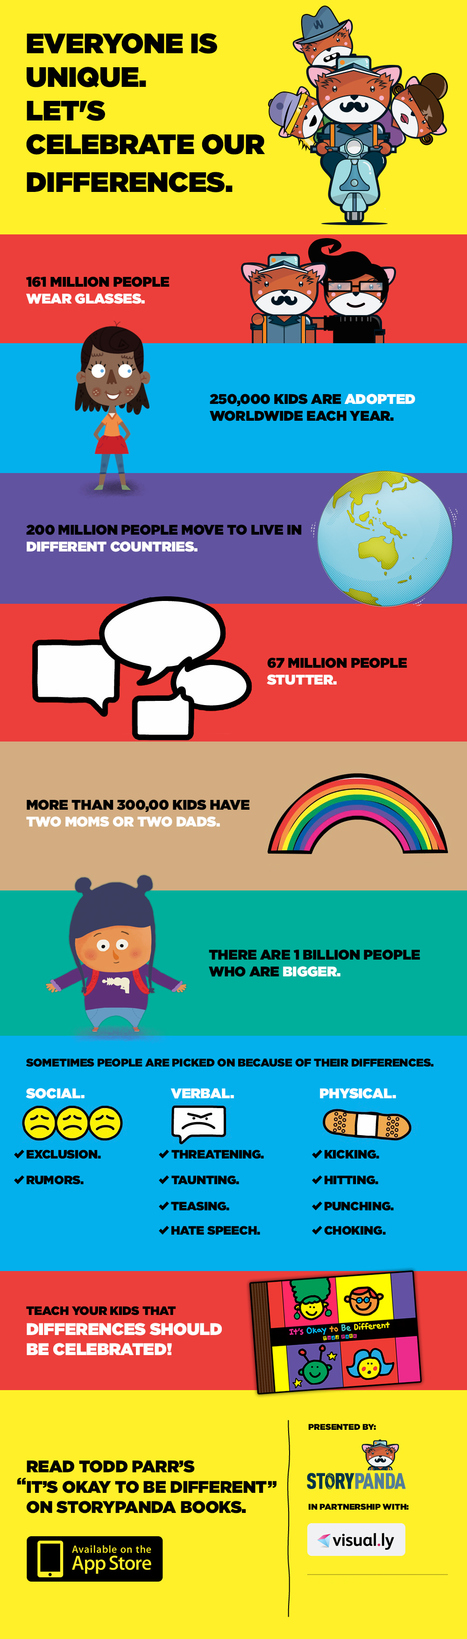 A Must-See Anti-Bullying Poster Perfect For Classrooms | SocialAction2014 | Scoop.it